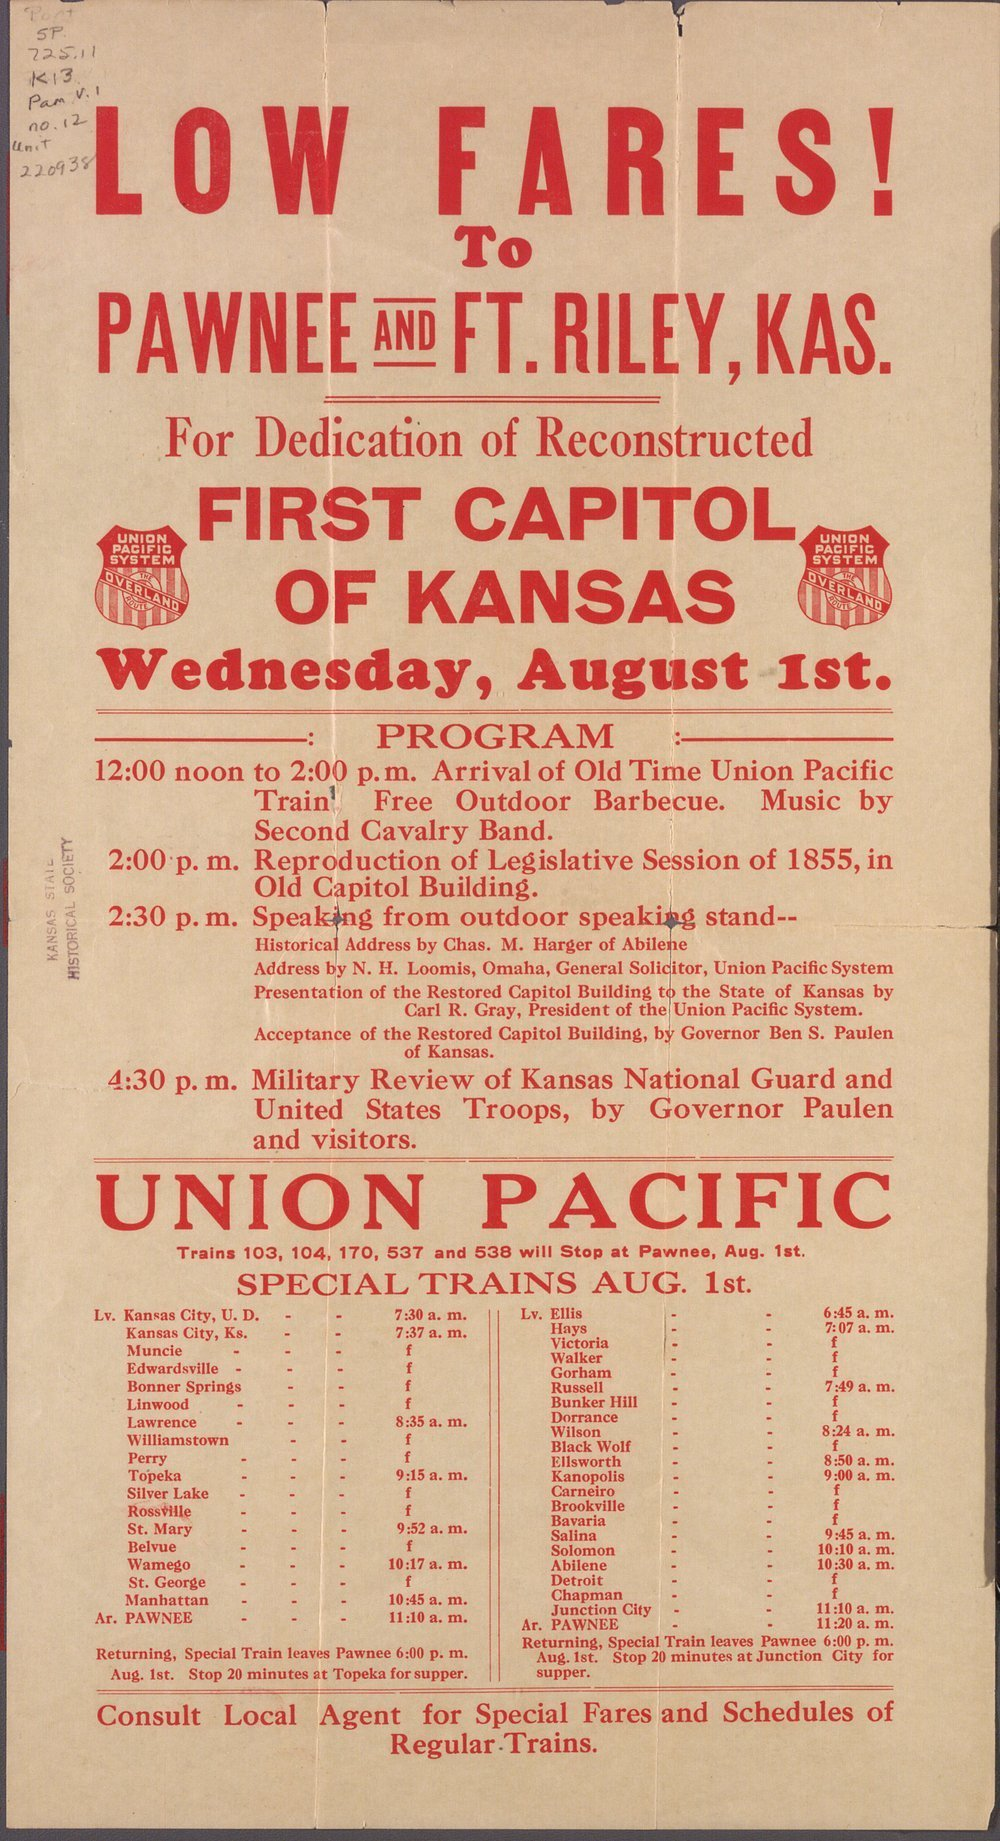 Dedication of reconstructed first capitol of Kansas